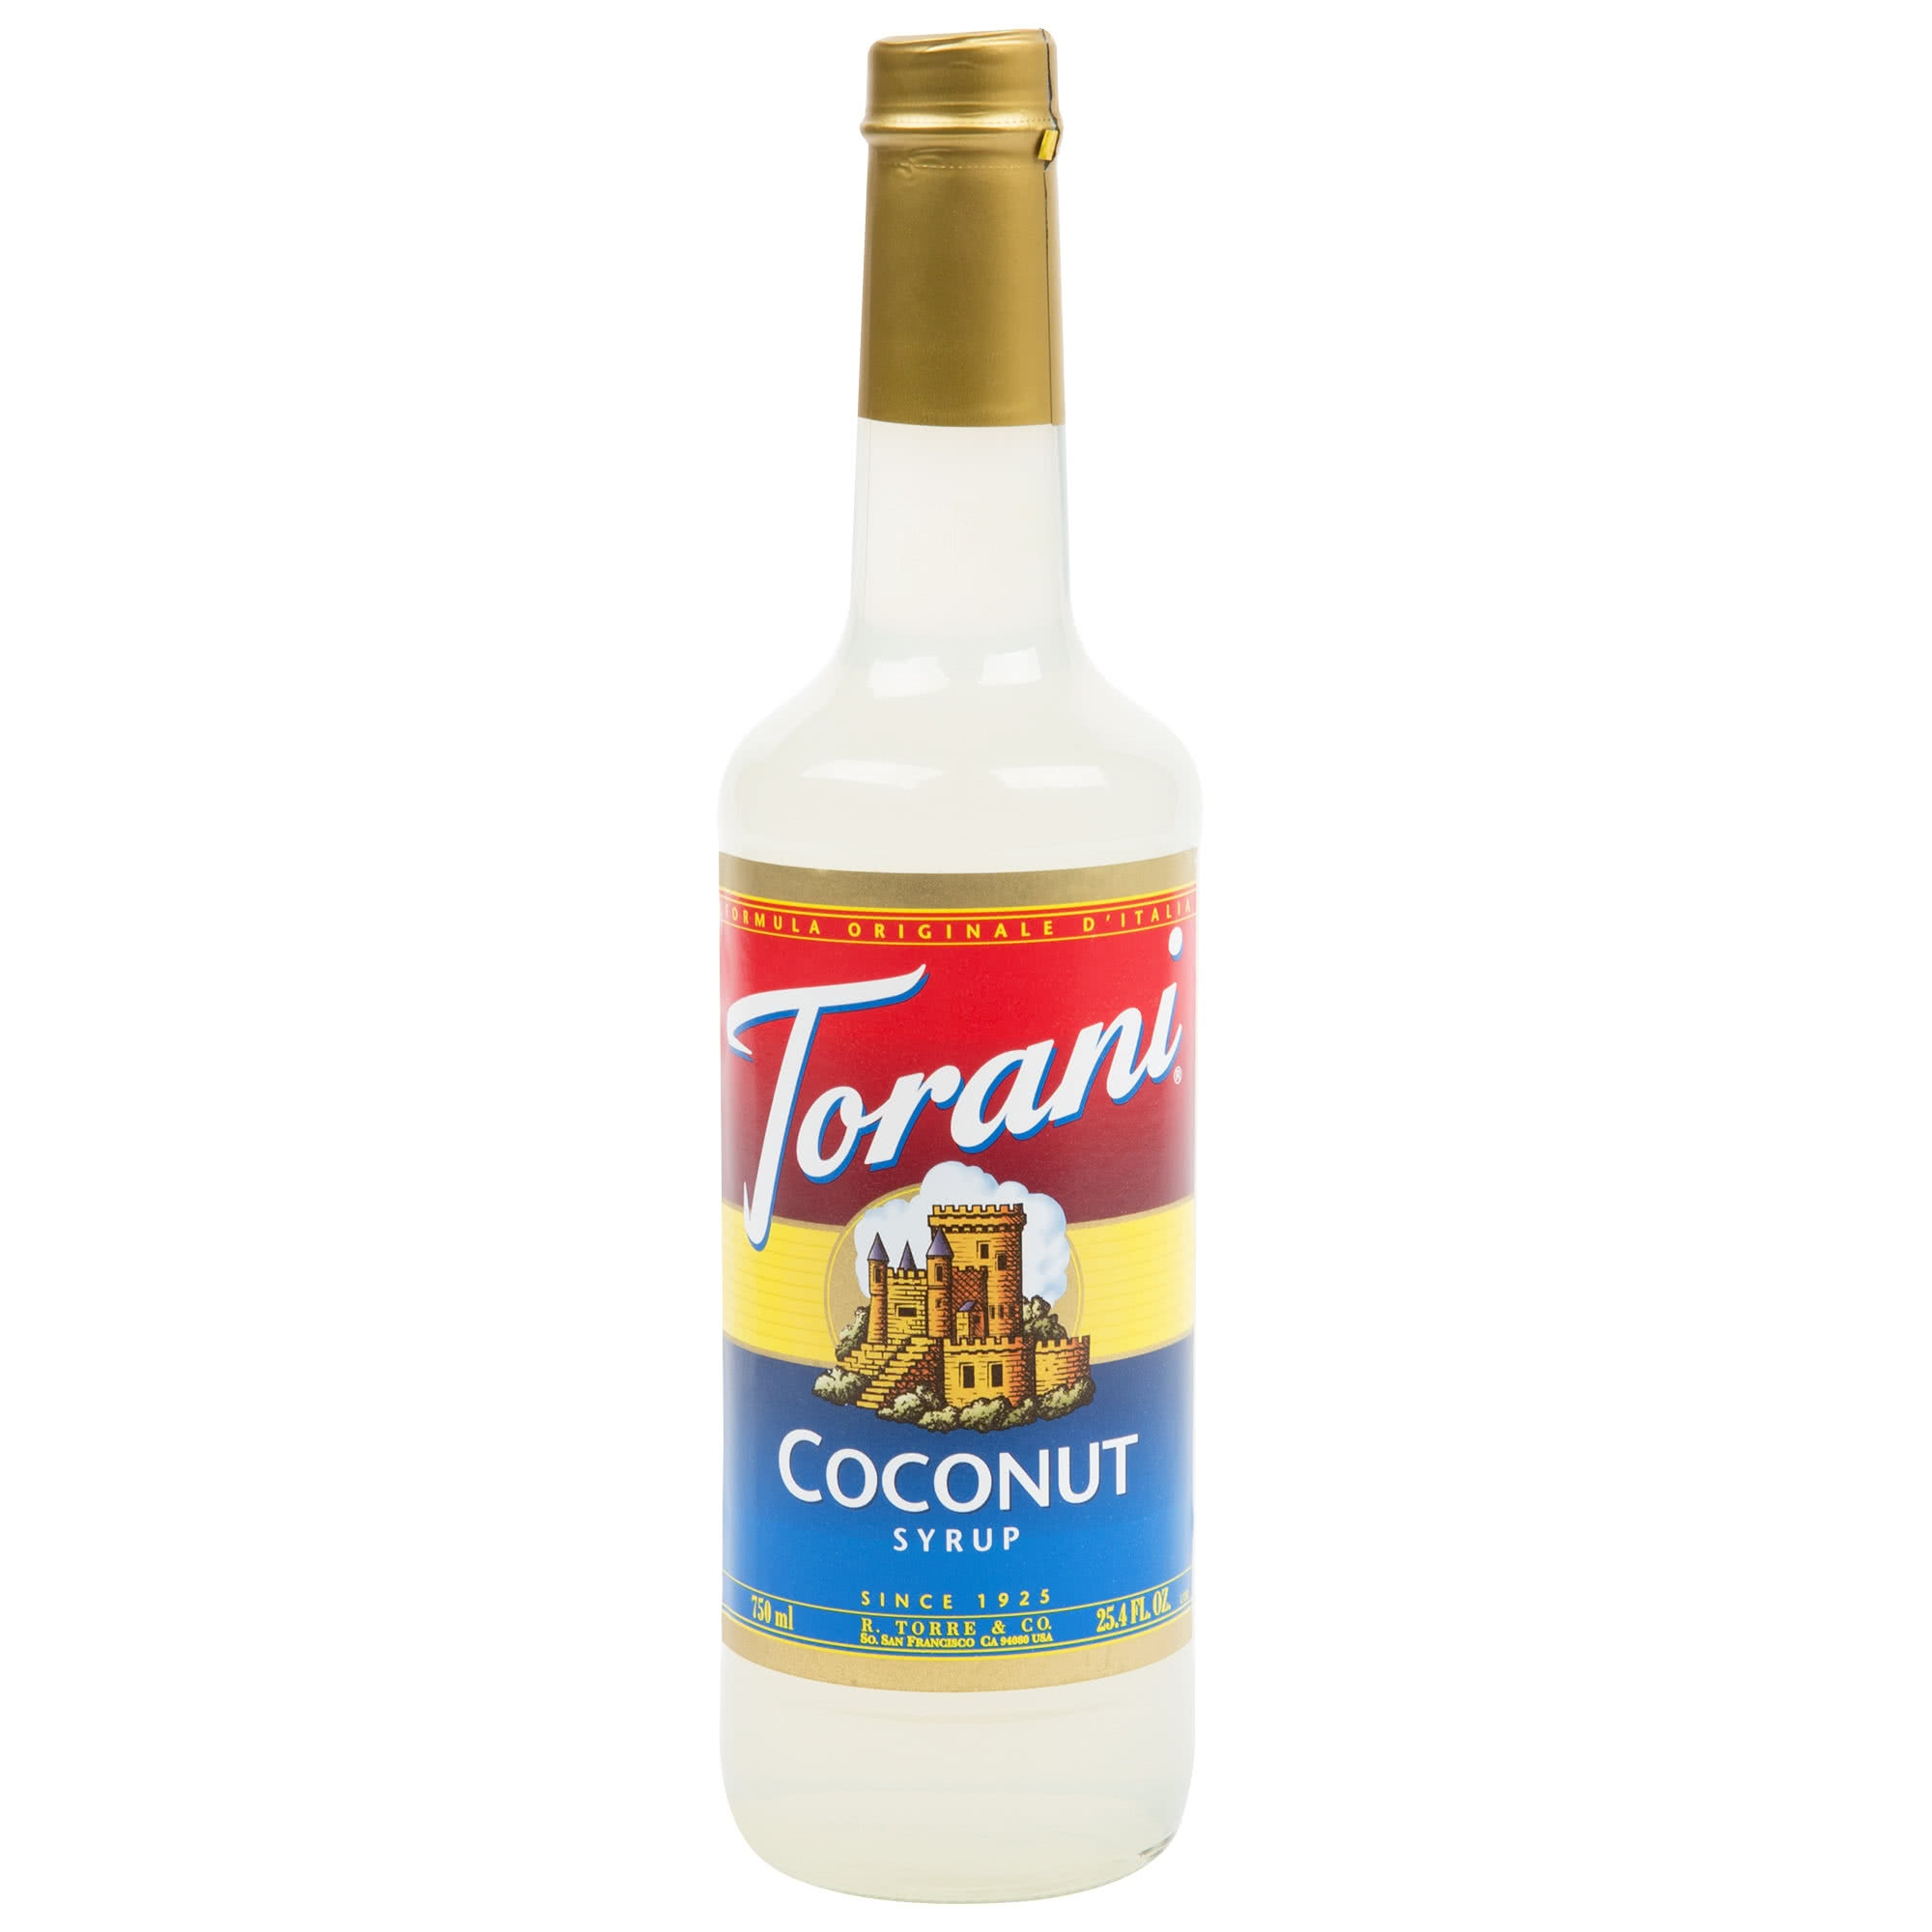 Torani Hawaiian Coconut Syrup 750 Ml Bottle